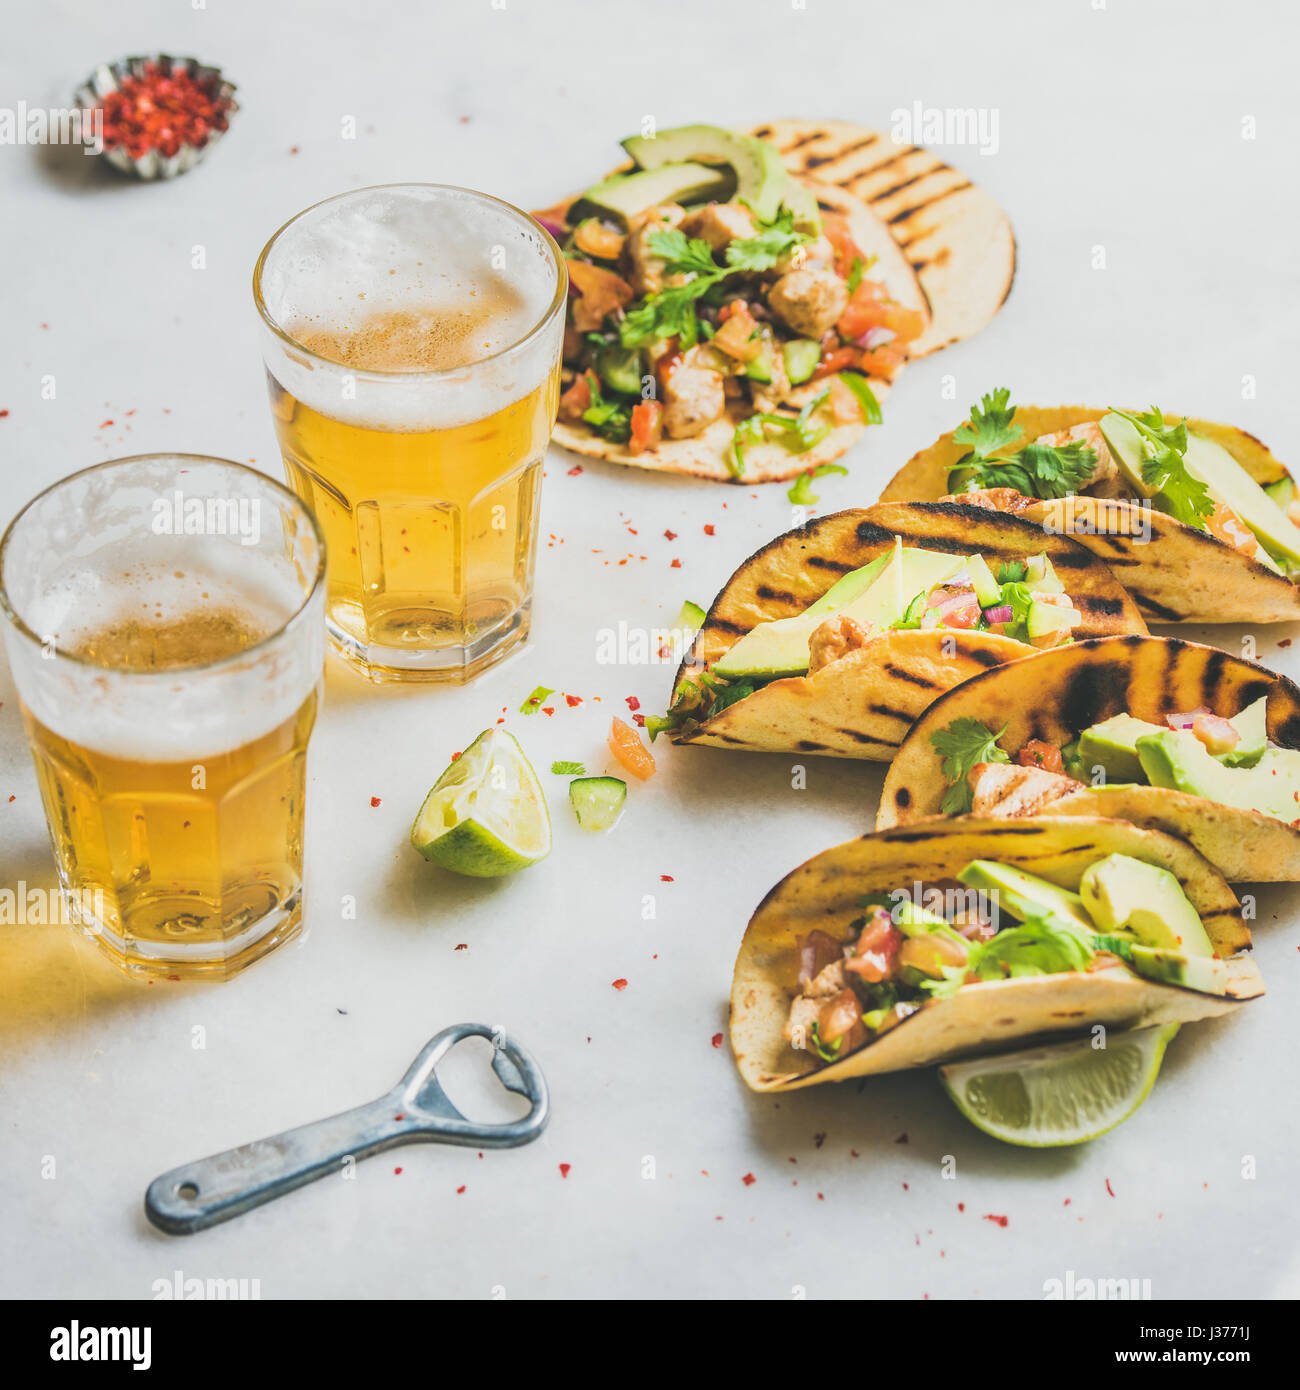 Healthy corn tortillas with beer in glasses over light background - Stock Image